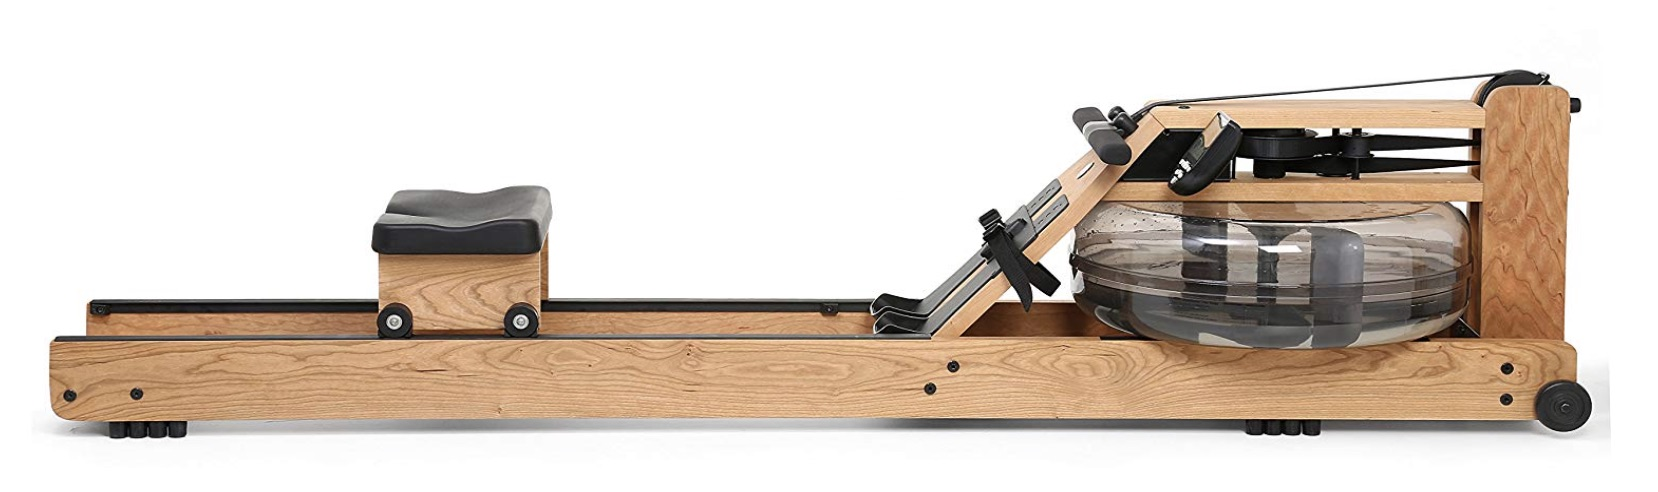 Water Rower Oxbridge Rowing Machine